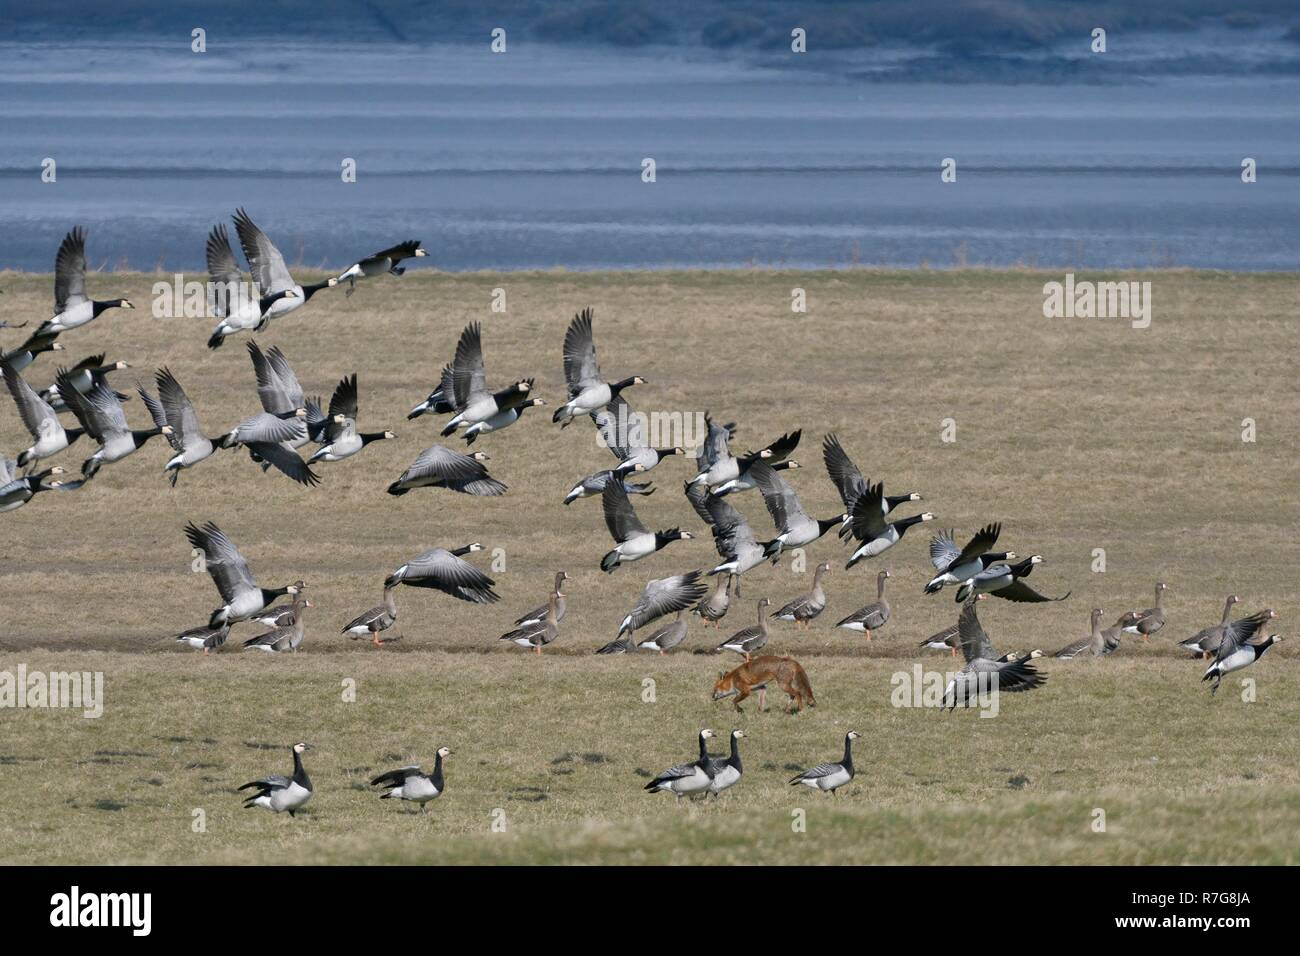 Barnacle geese (Branta leucopsis) taking off as a hunting Red fox (Vulpes vulpes) walks across the saltmarsh they were resting on, Severn estuary, UK - Stock Image